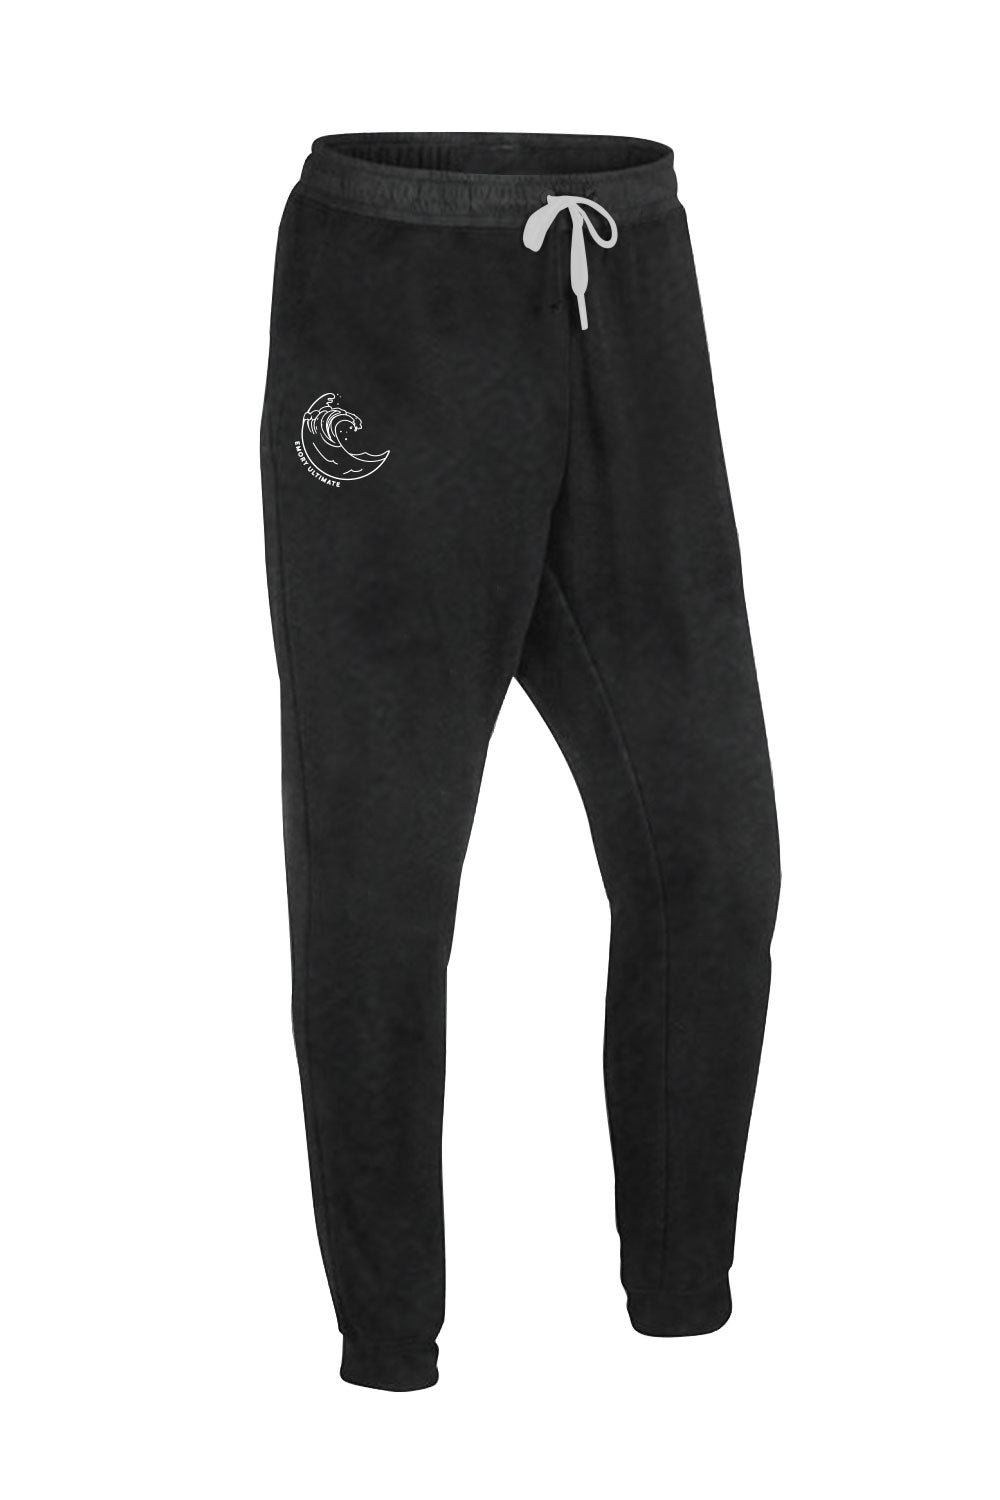 Emory Women's Ultimate Joggers (Black)